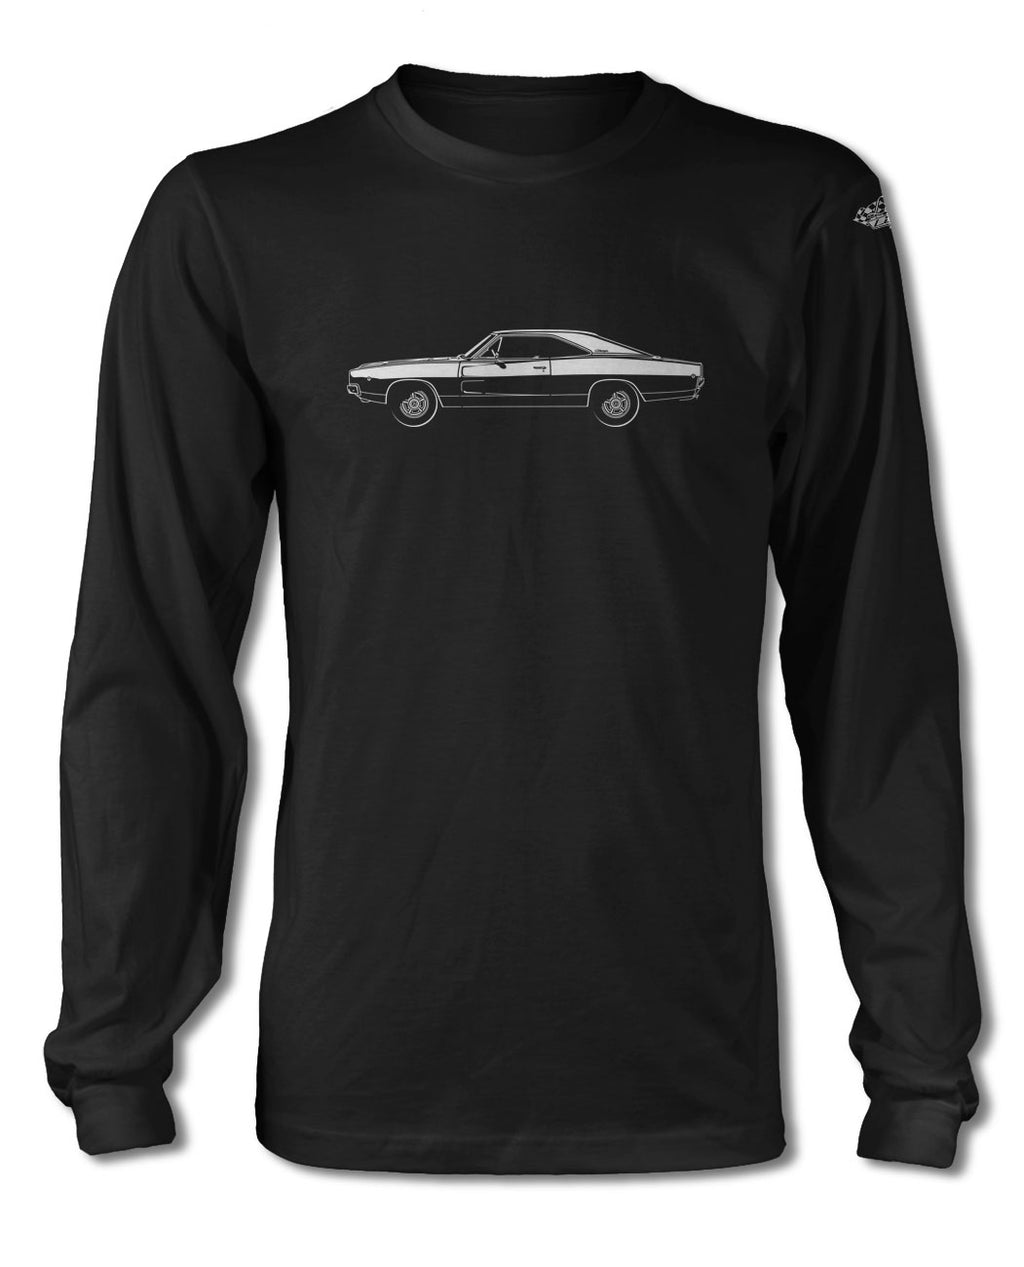 1968 Dodge Charger RT Hardtop T-Shirt - Long Sleeves - Side View